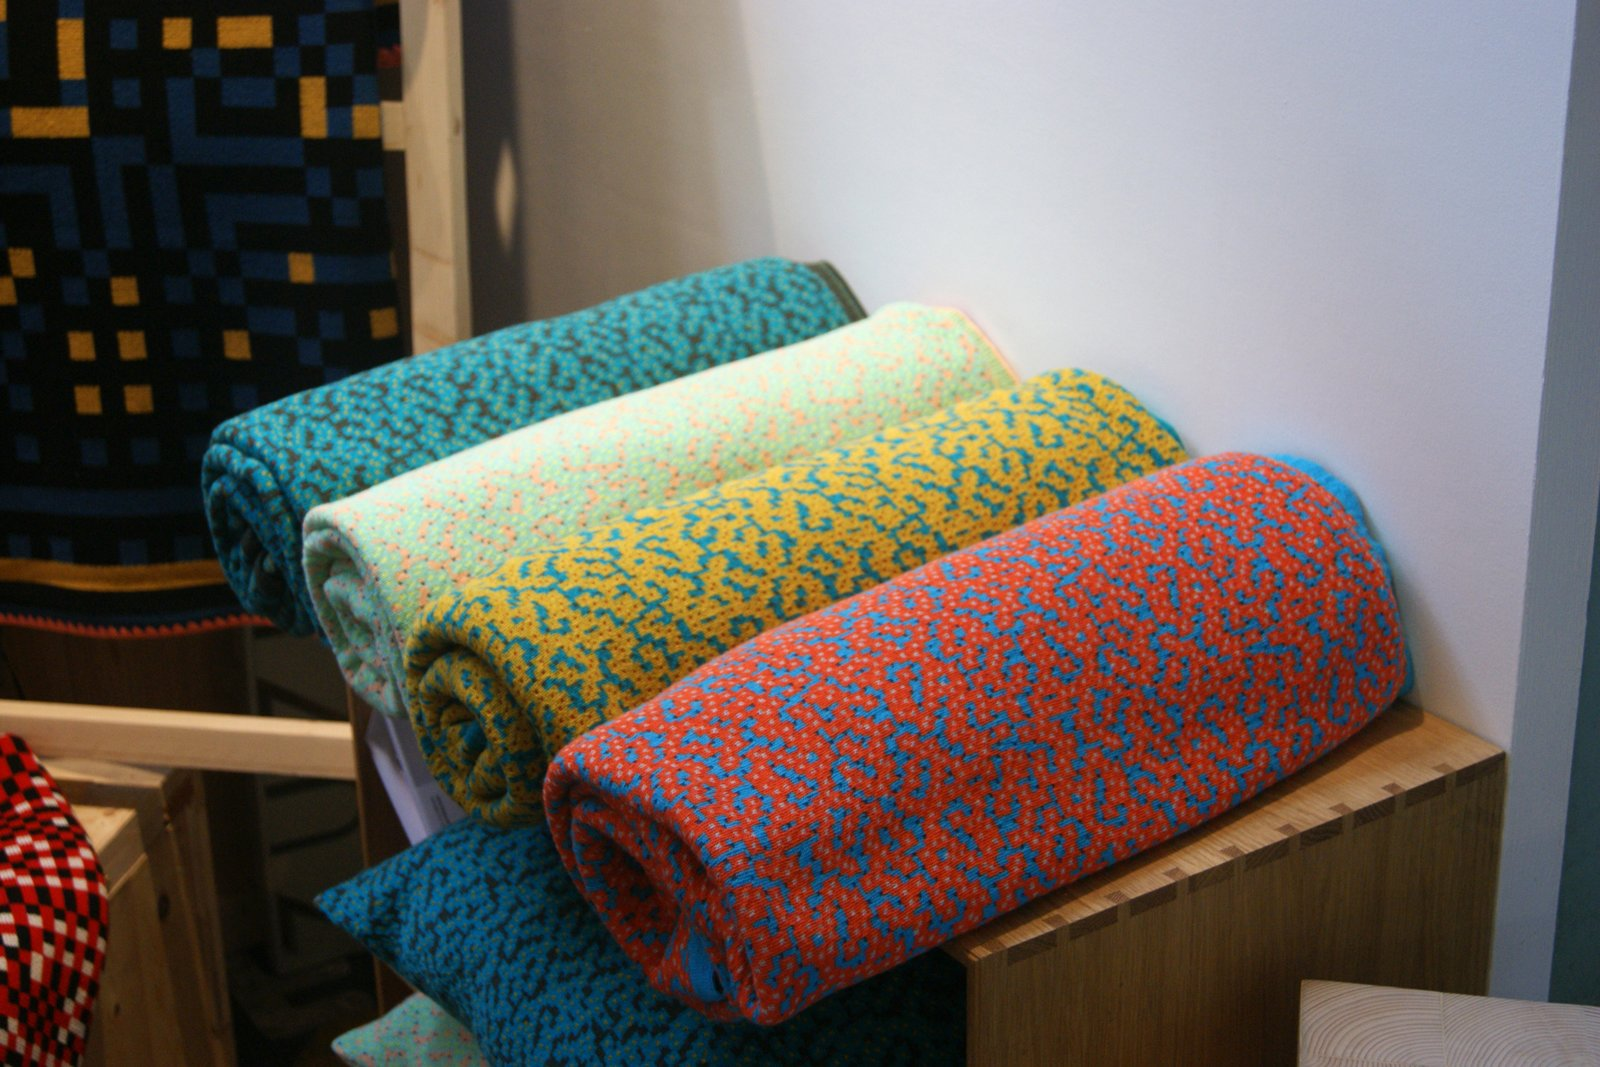 Over at independent trade show designjunction, the bold color combinations of Barcelona-born, London-based Cristian Zuzunaga's Labyrinth blankets caught our eye.  Key Trends from 2013 London Design Festival by Ali Morris